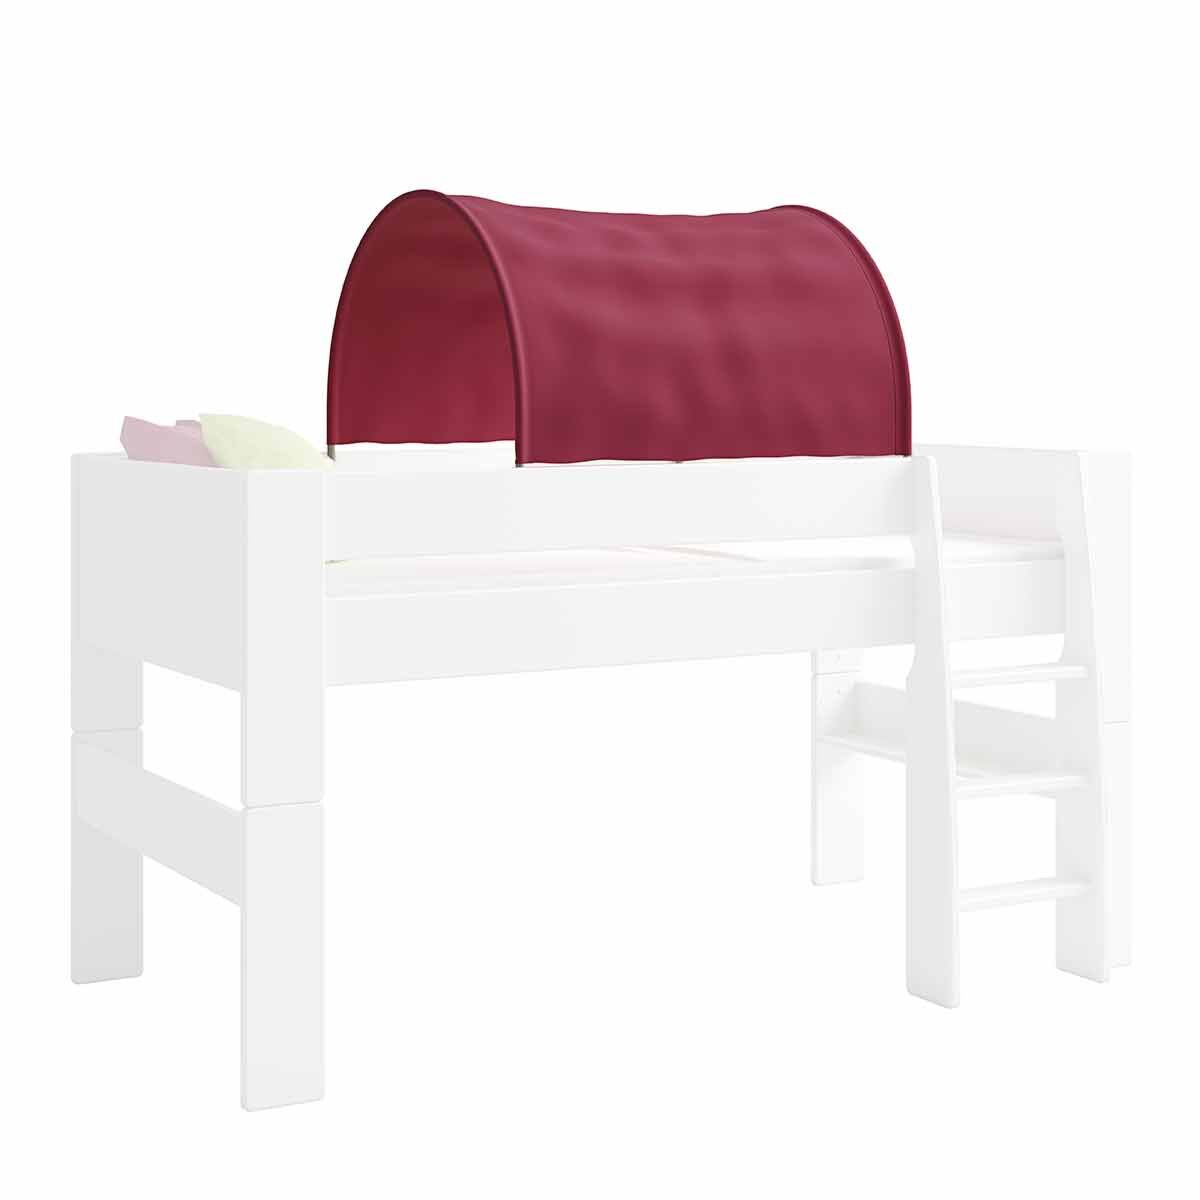 Steens for Kids Tunnel for Midsleeper Pink and Purple